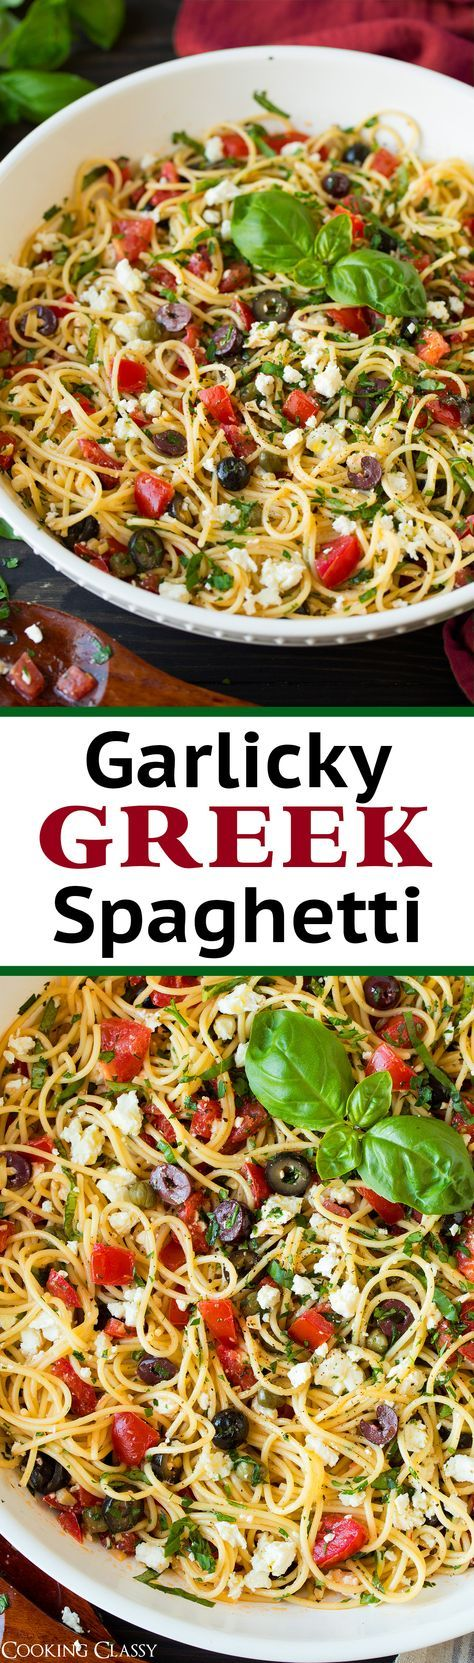 Garlicky Greek Spaghetti Toss - Cooking Classy